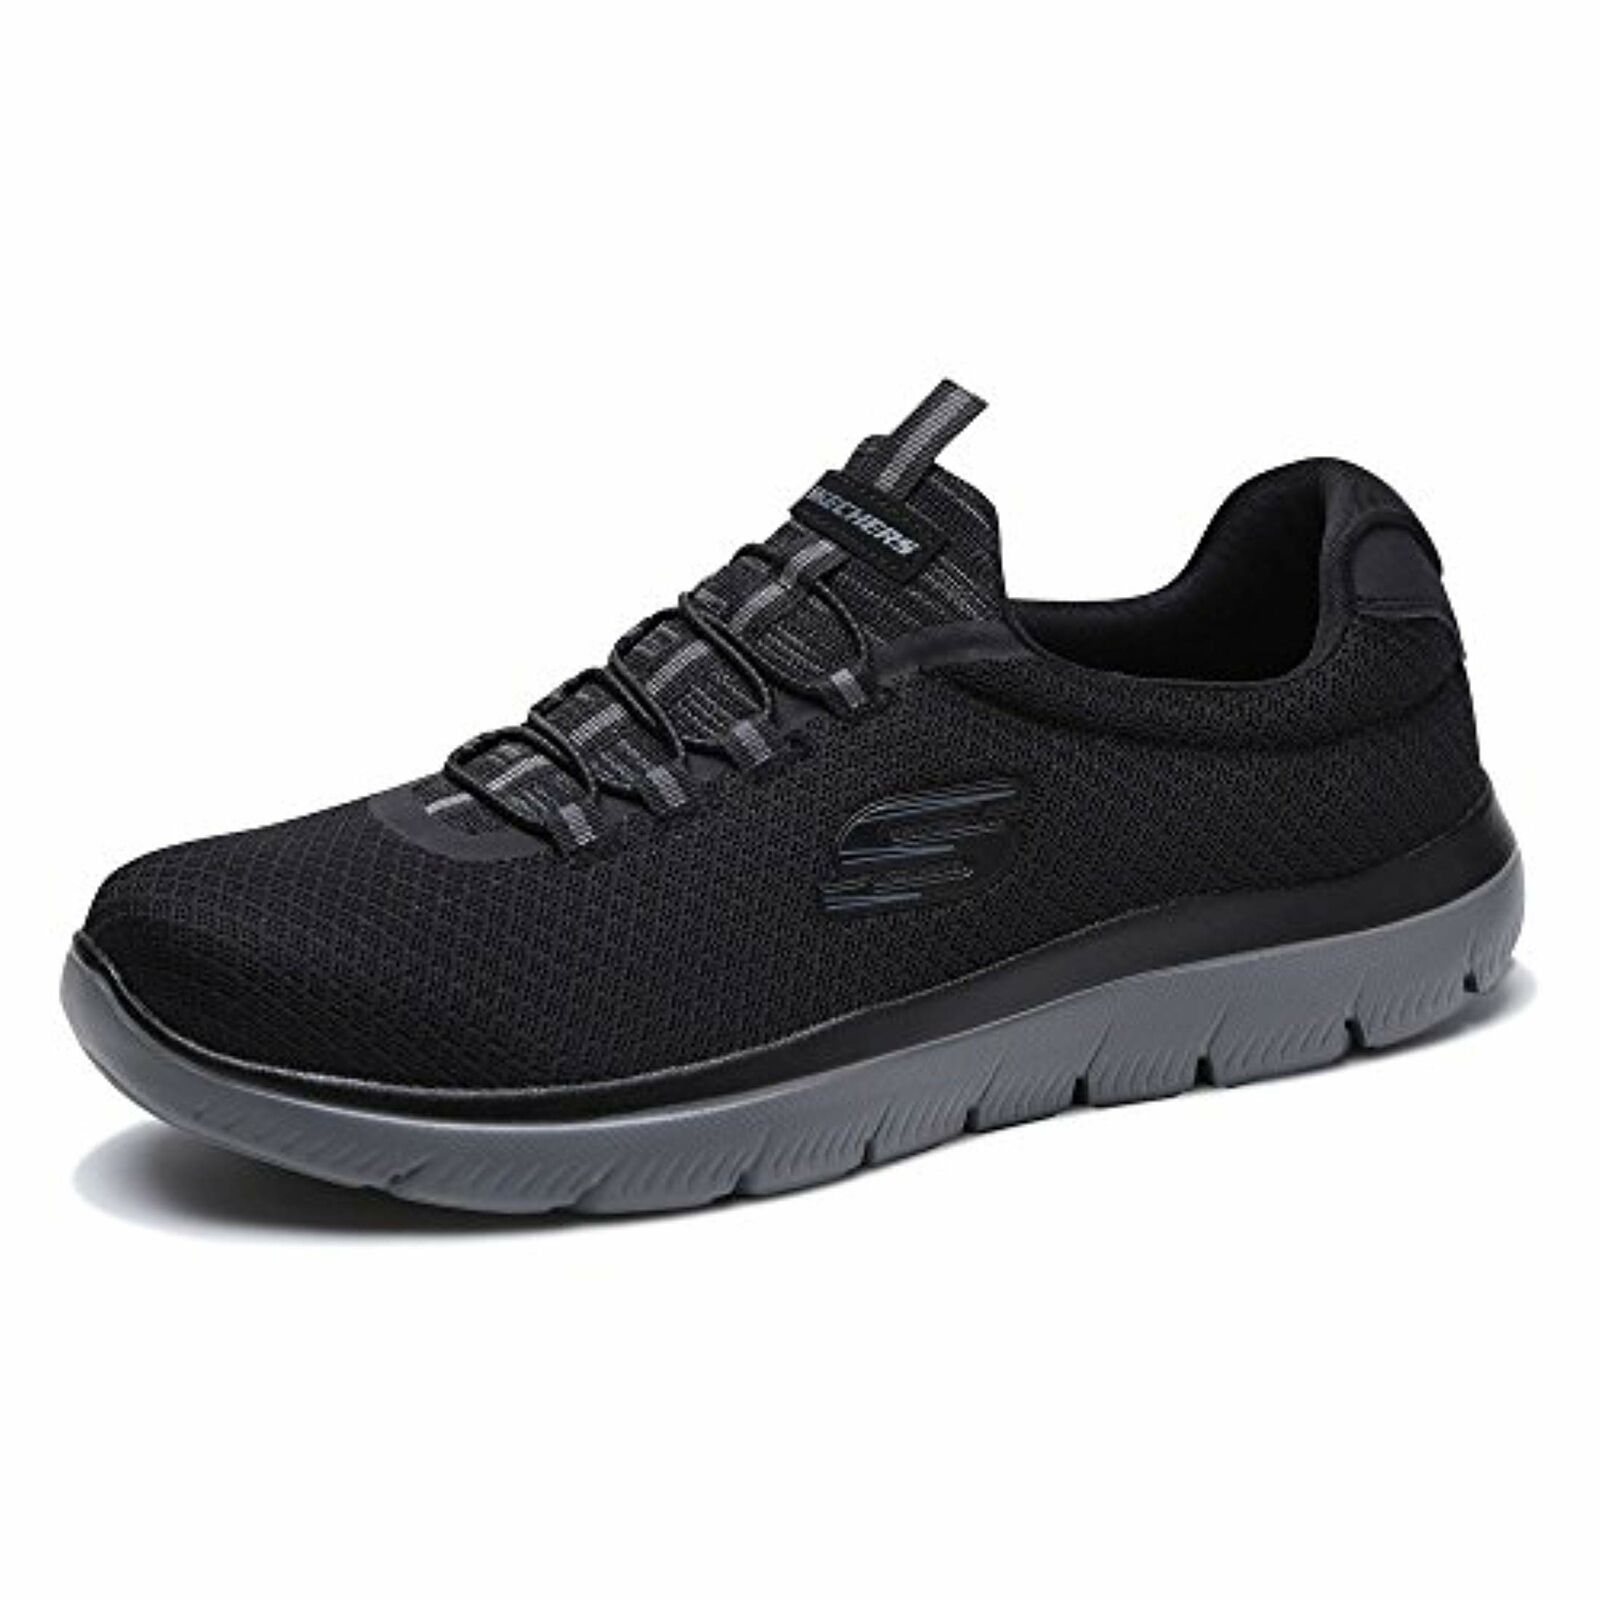 Skechers Summits Homme Slip On paniers Noir Anthracite 9 W